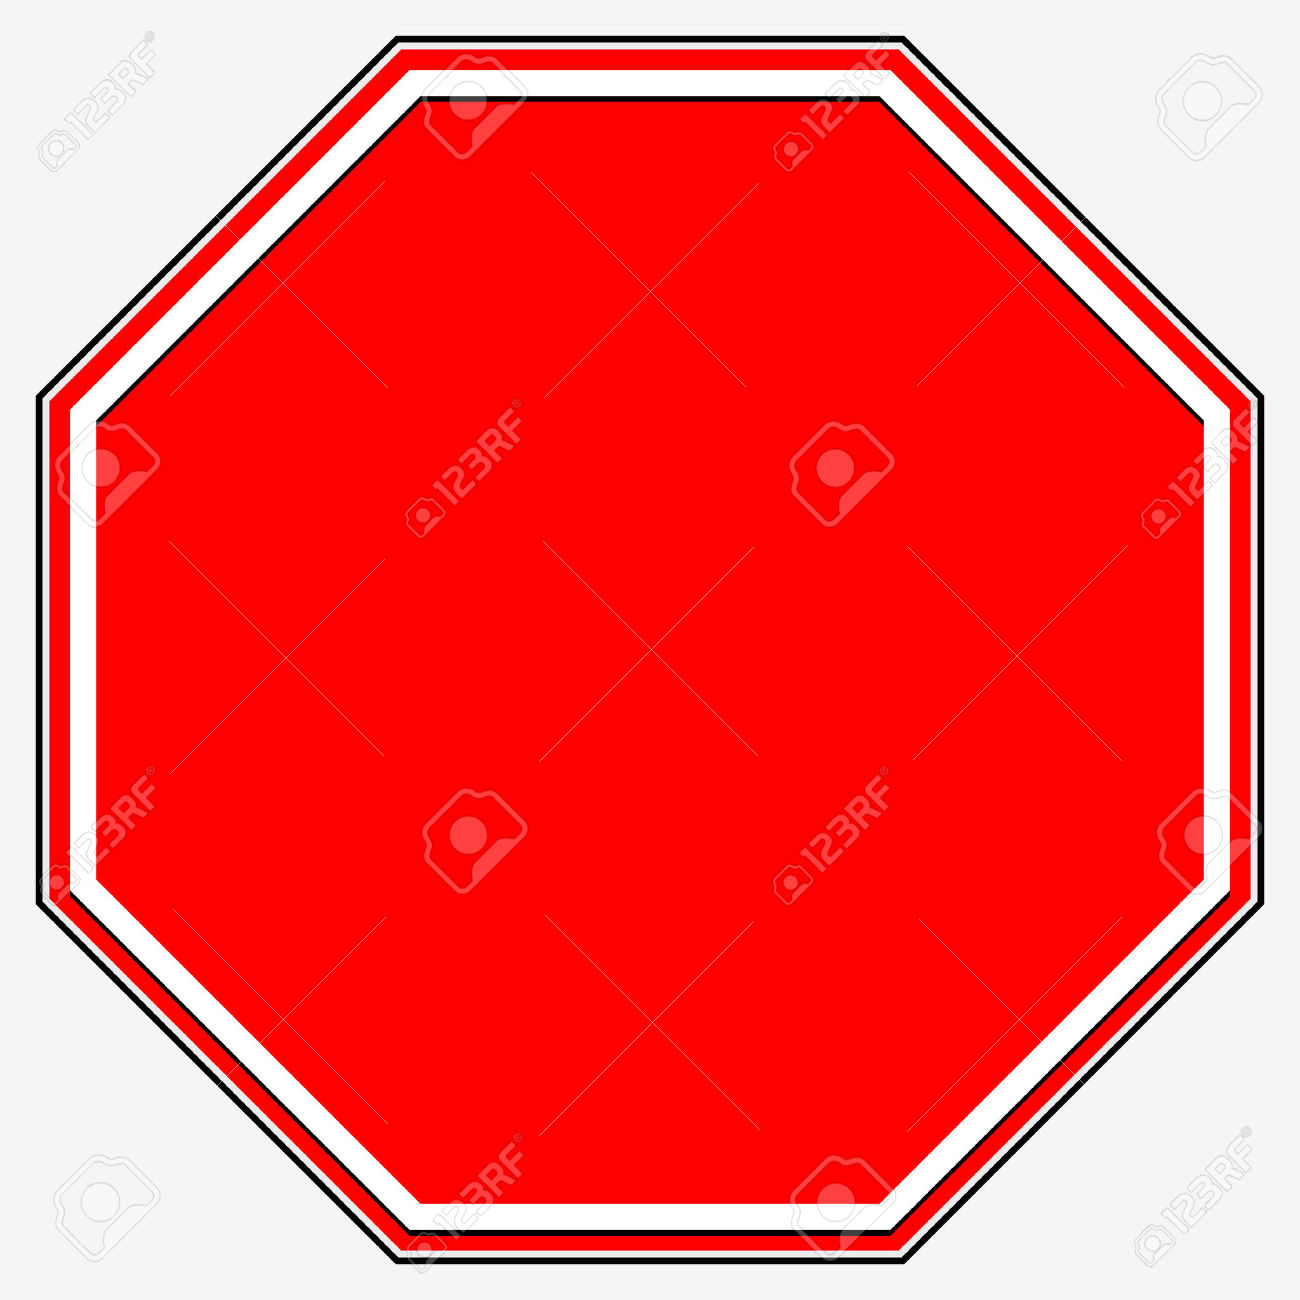 Blank Stop Sign. Blank Red Octagonal Prohibition, Restriction.